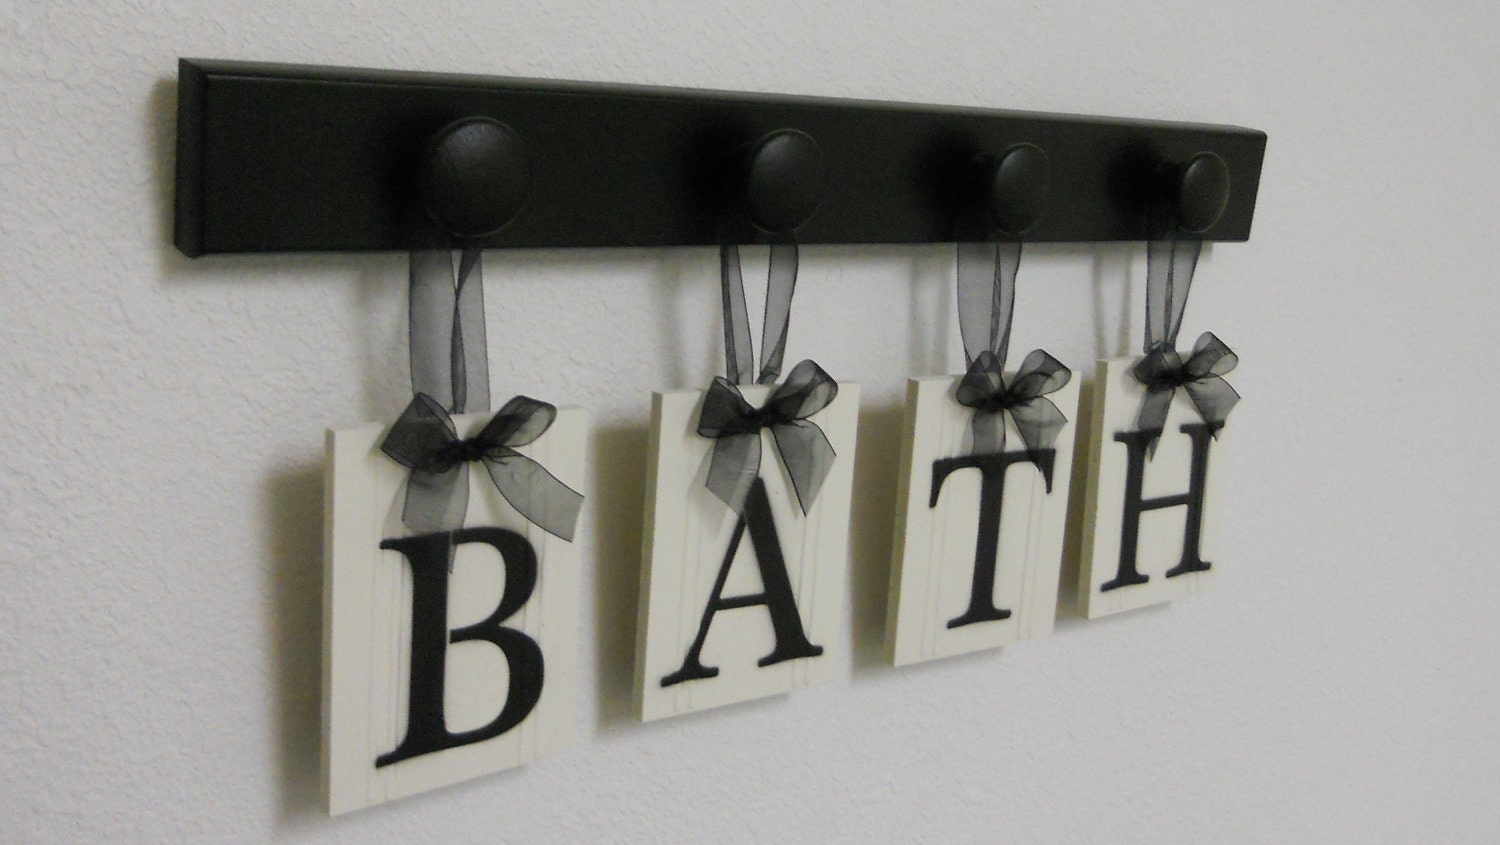 BATH Sign Personalized Handmade Hanging Letters by NelsonsGifts